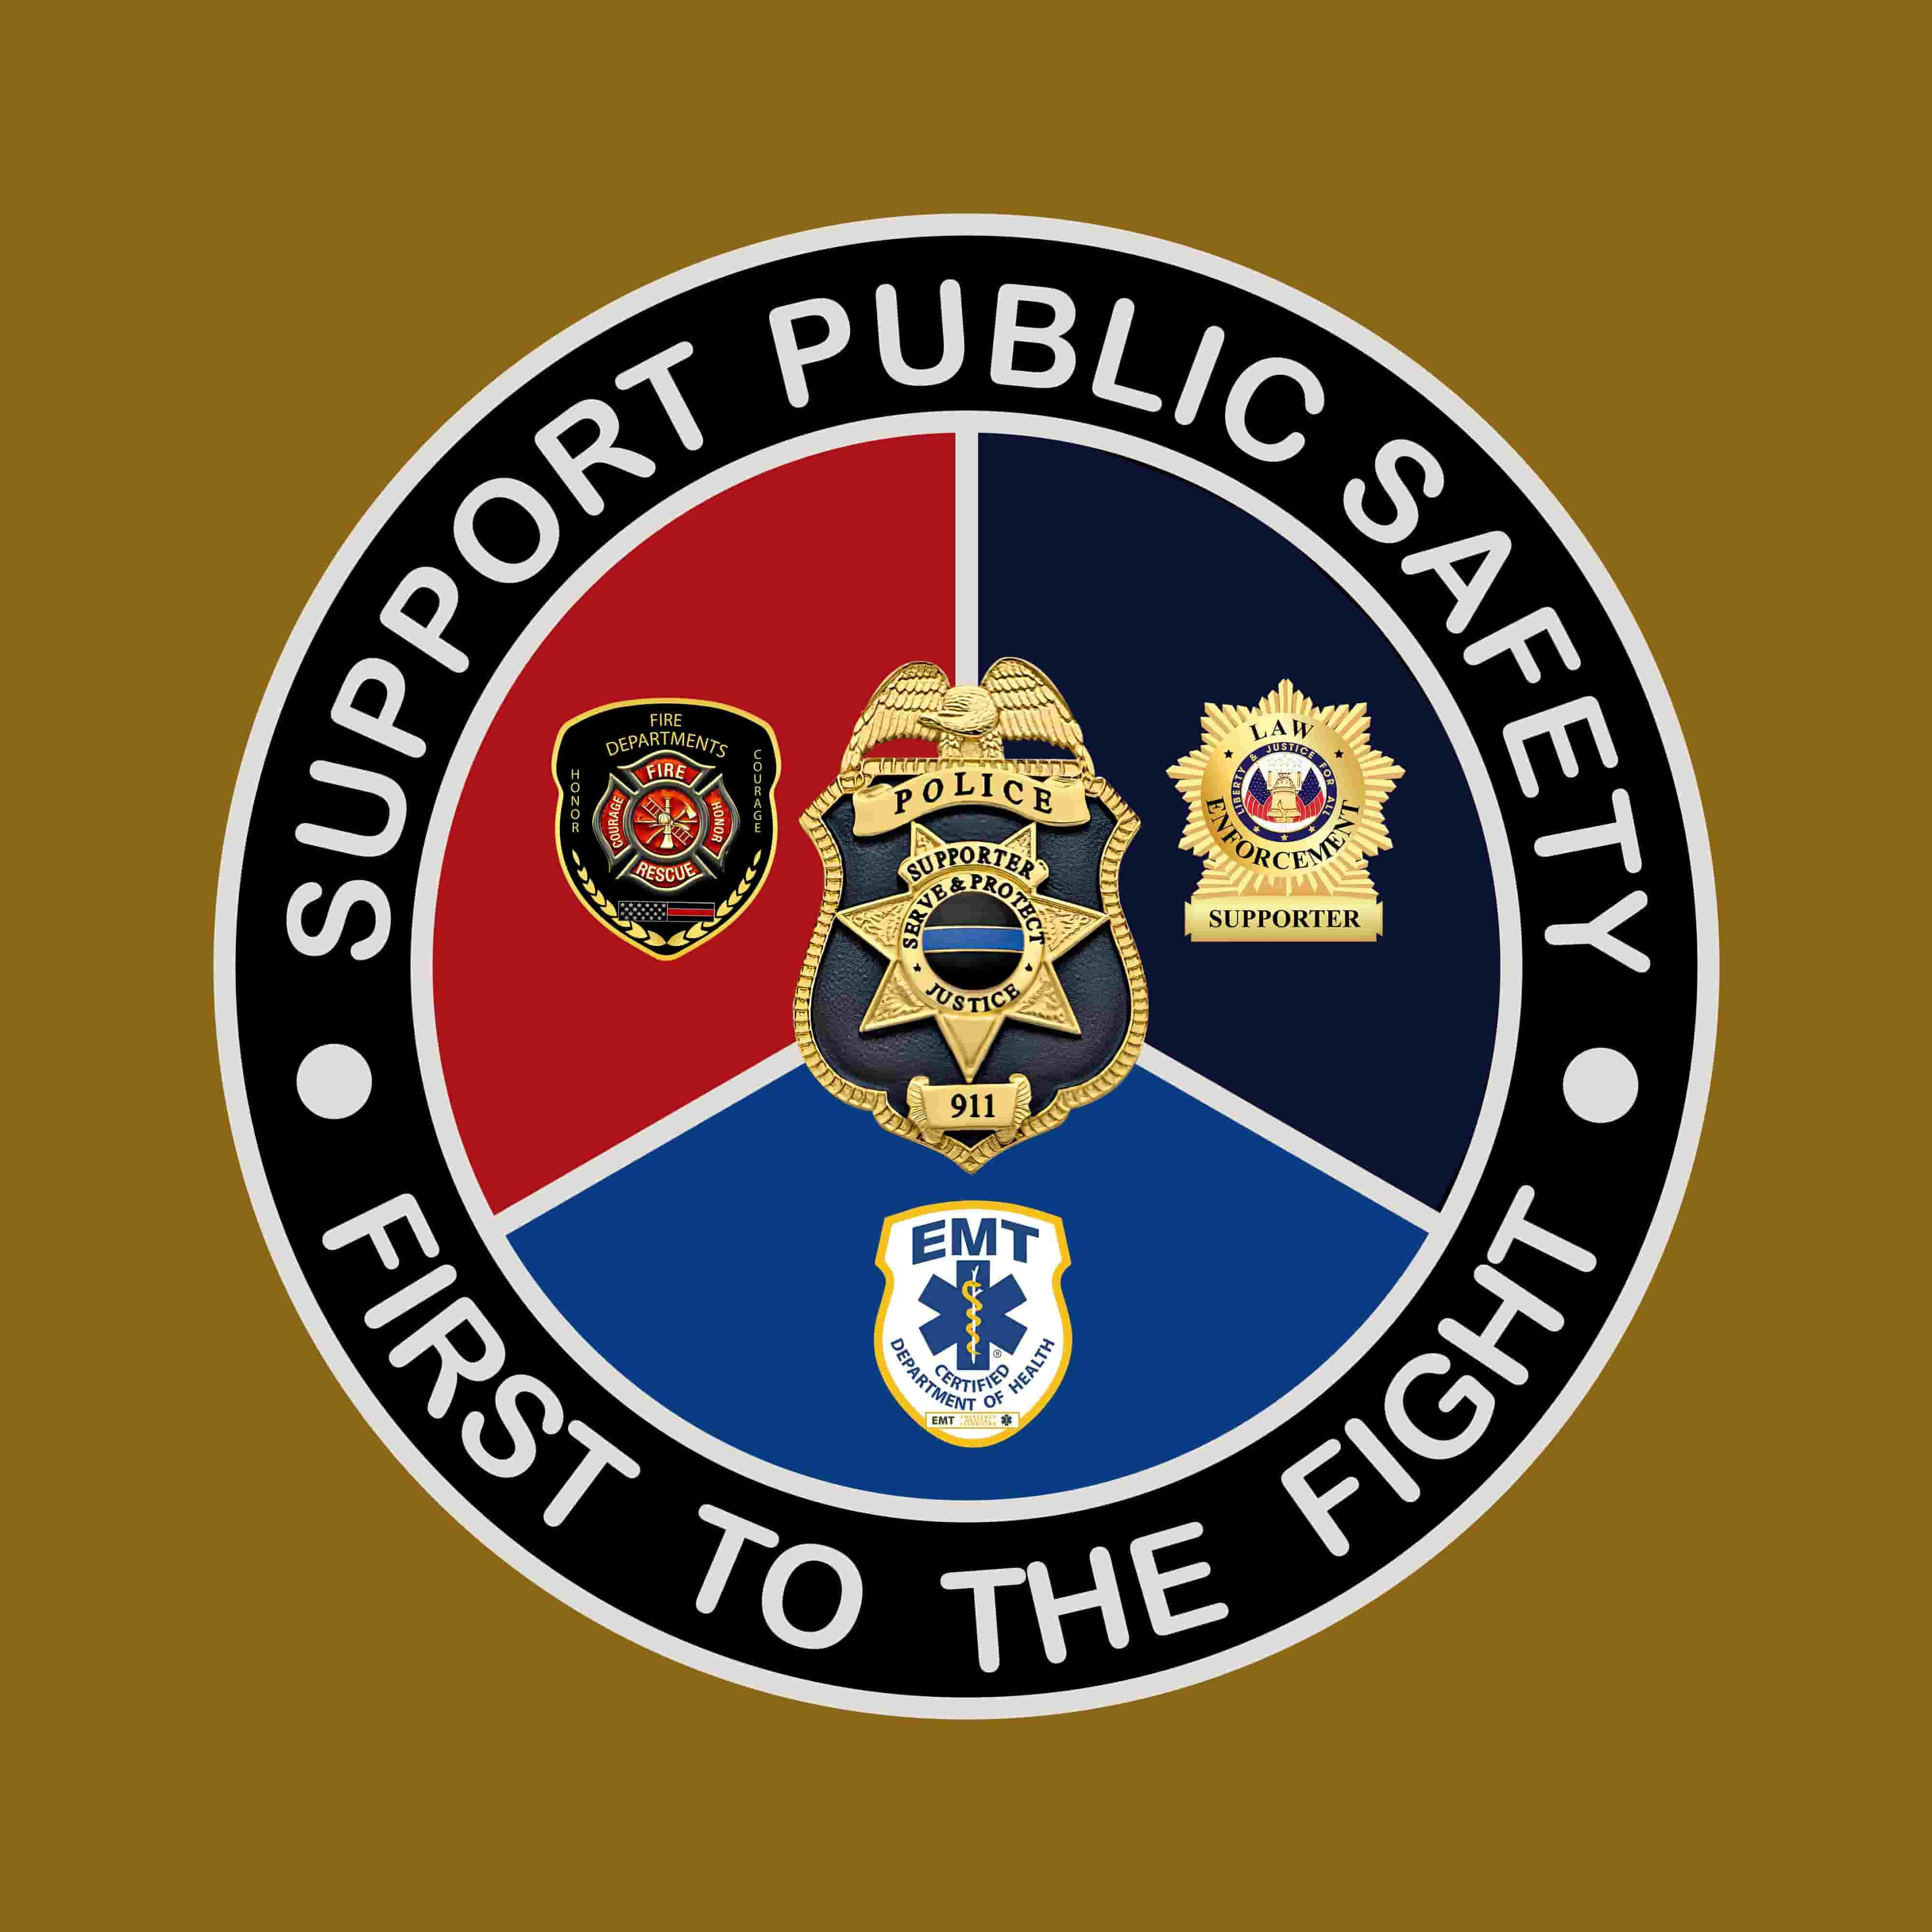 iSupportLE™ Offers Products That Show Support for First Responders Nationwide